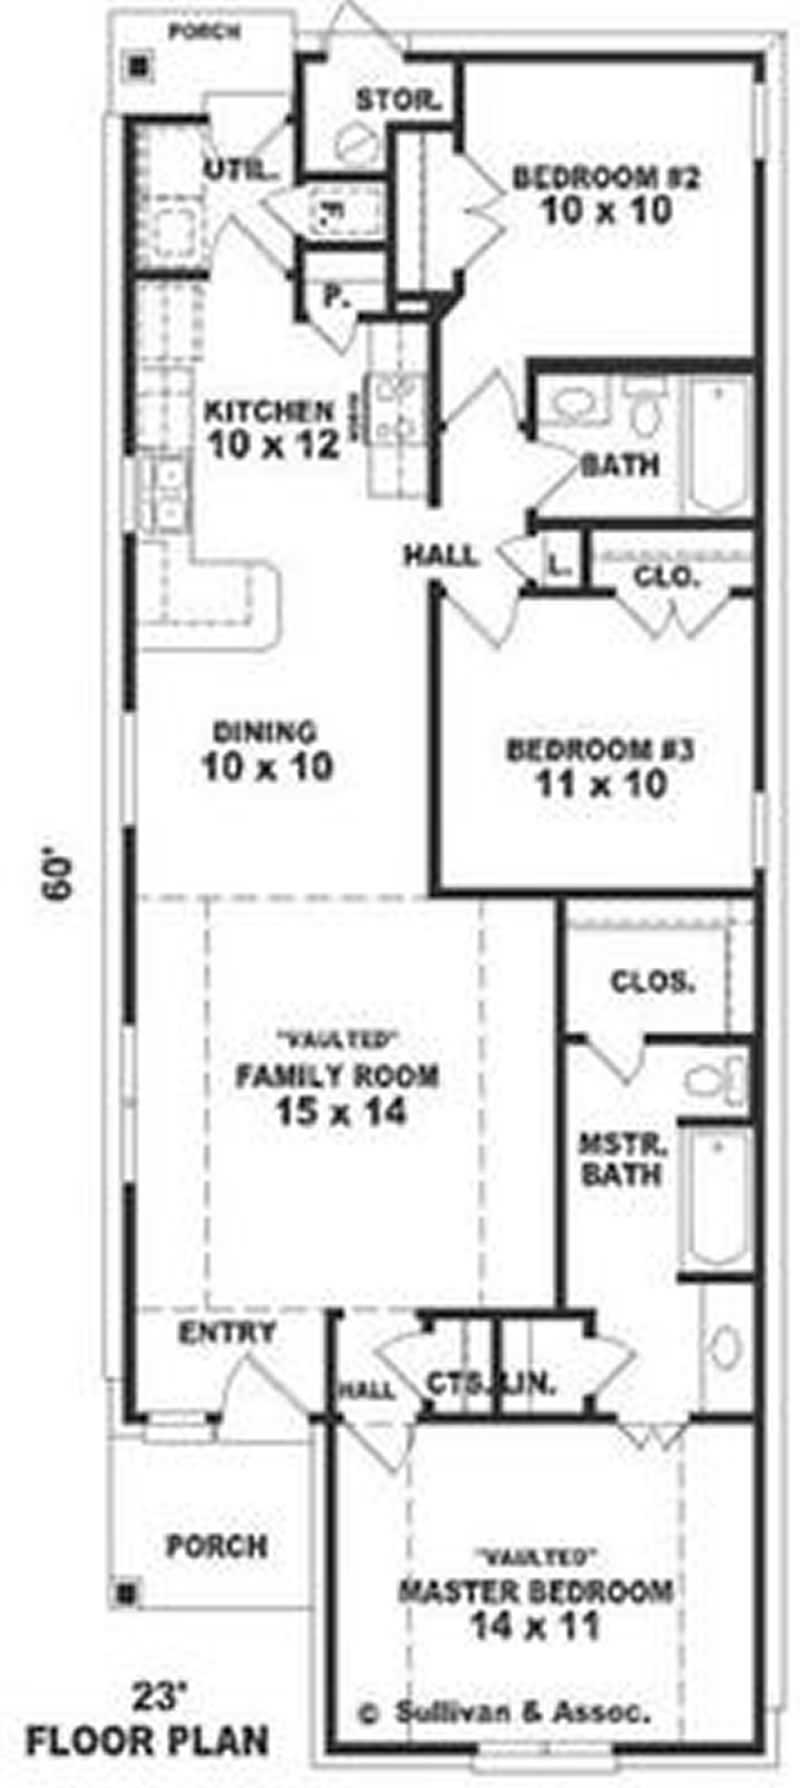 small bungalow house plans home design su1631 8254 viking longhouse layout related keywords amp suggestions